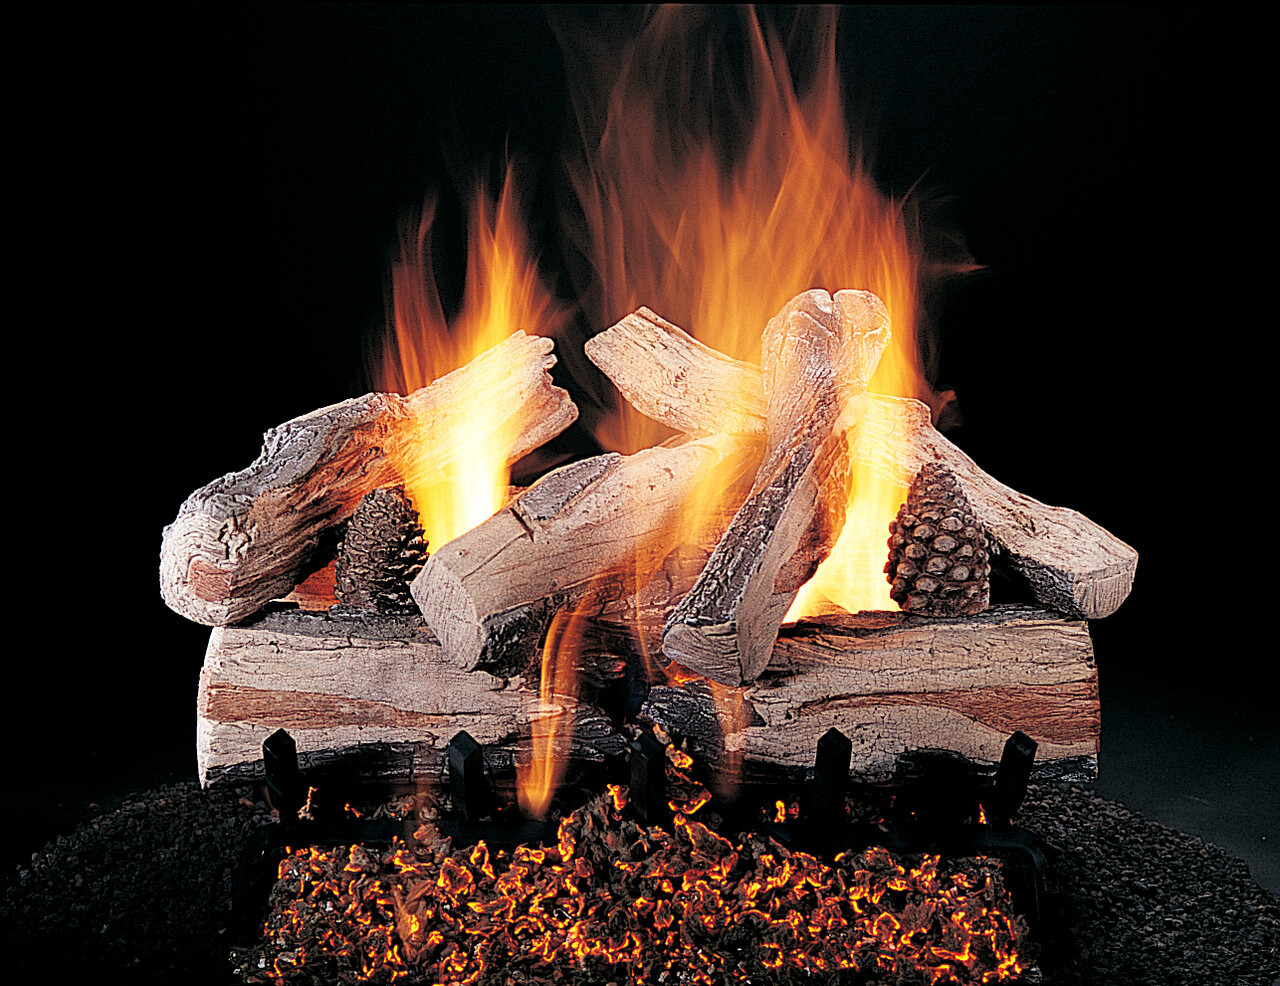 """Evening CrossFire 24-inch set size on FX burner and 5/8"""" Grate by Rasmussen Gas Logs"""